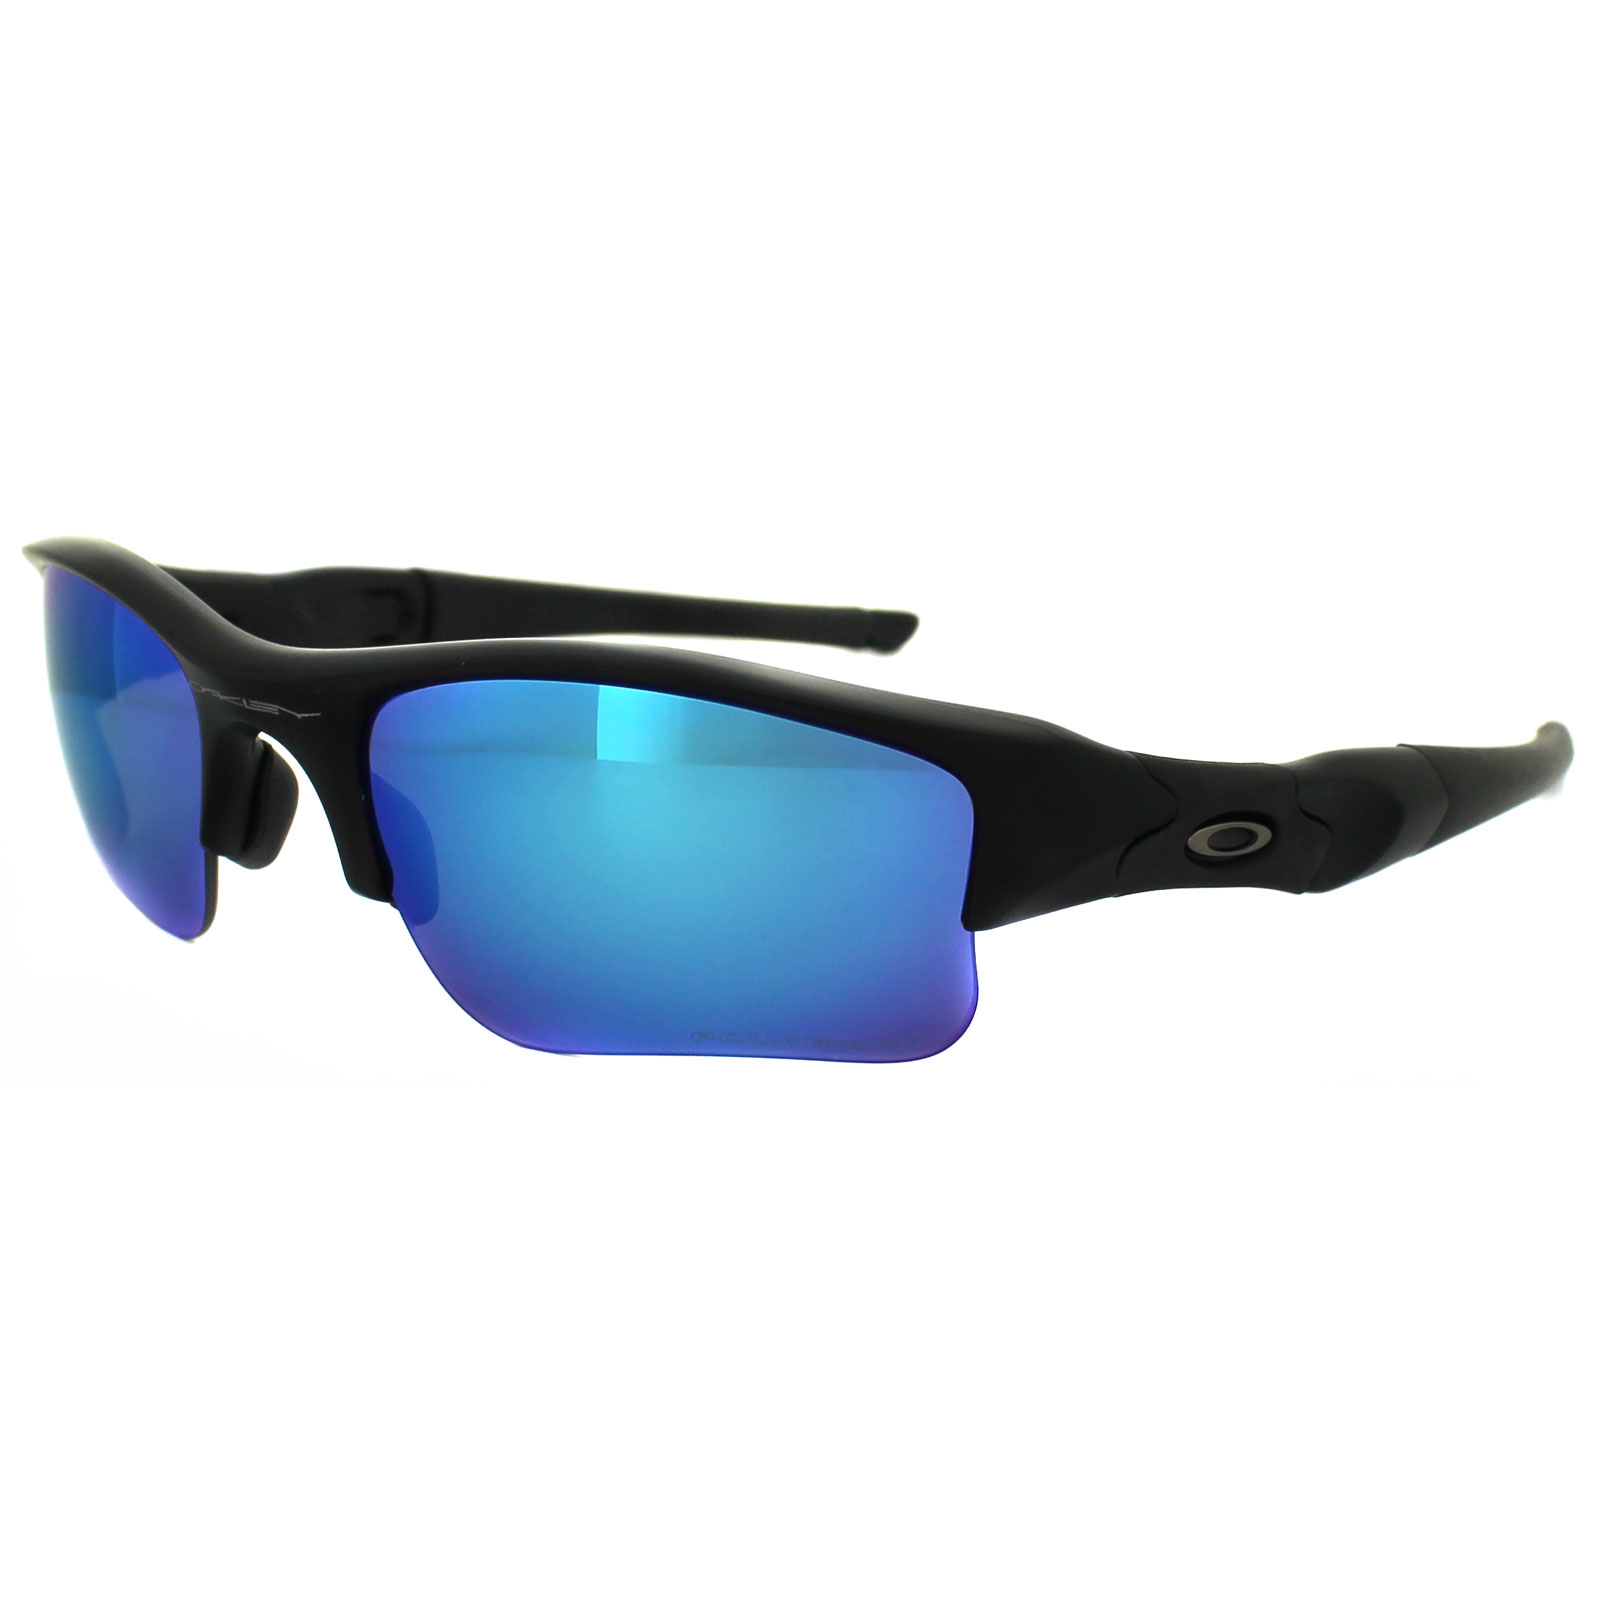 black polarized sunglasses p4g4  black polarized sunglasses